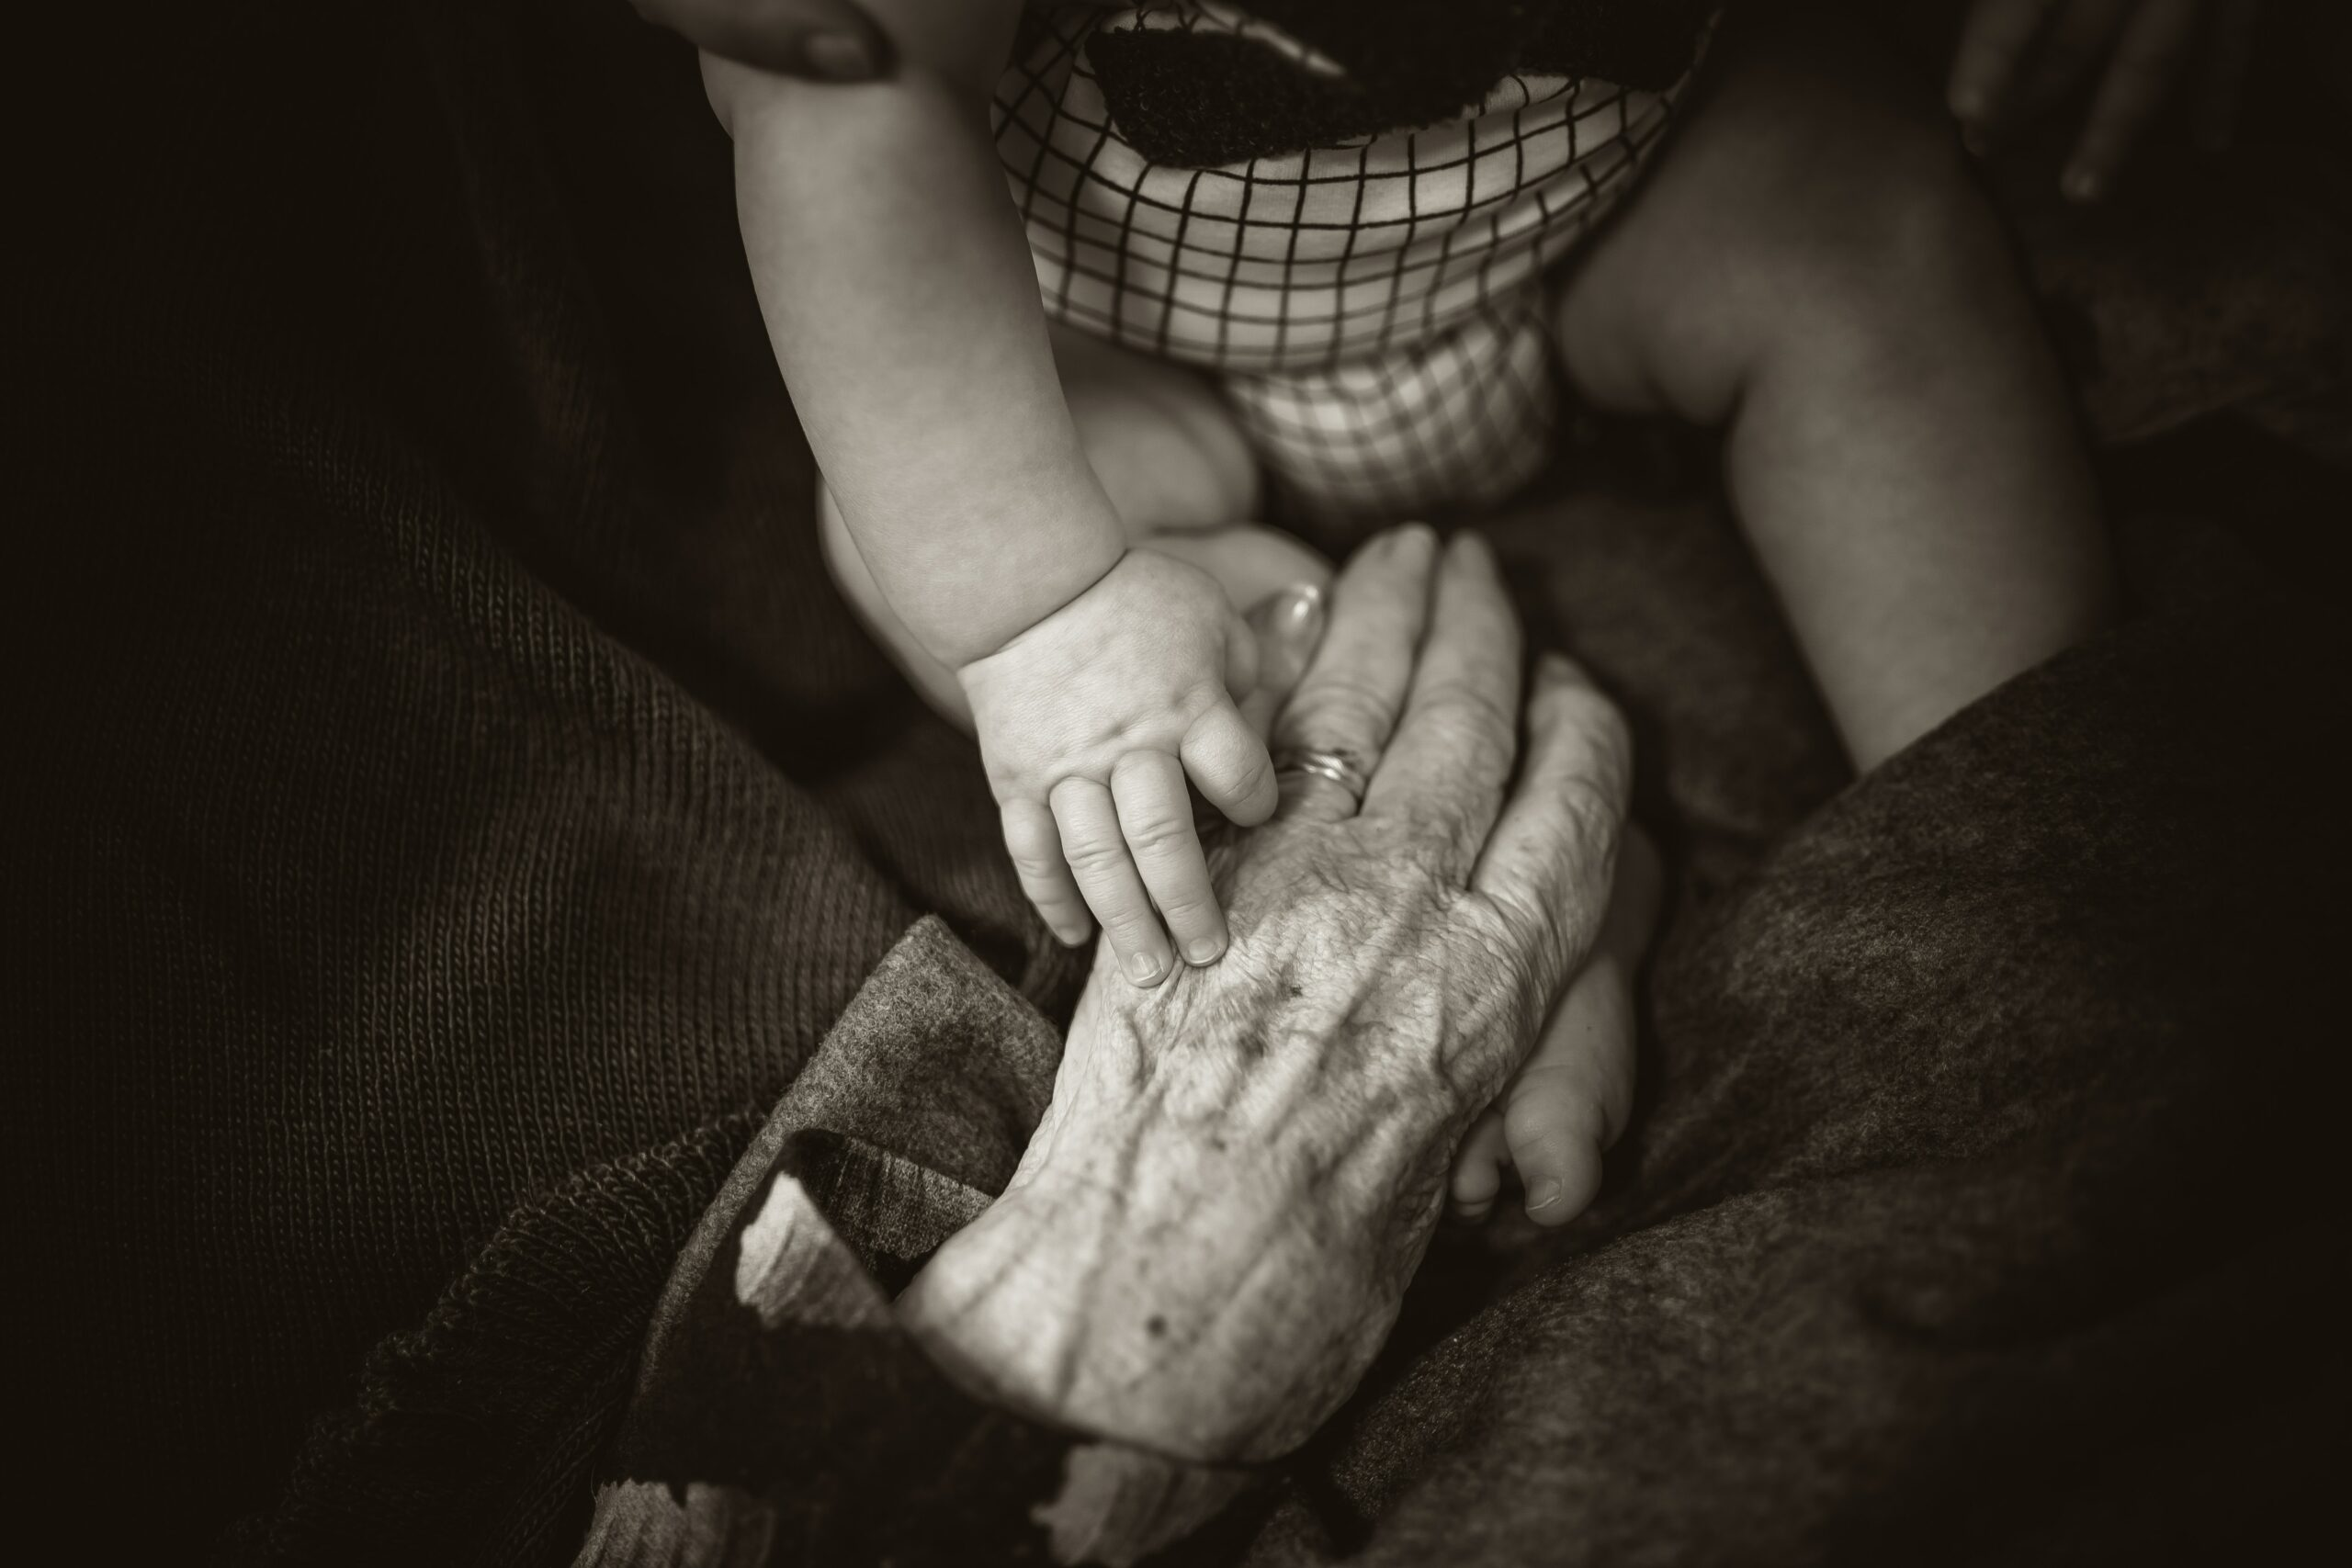 Care home residents need contact with family